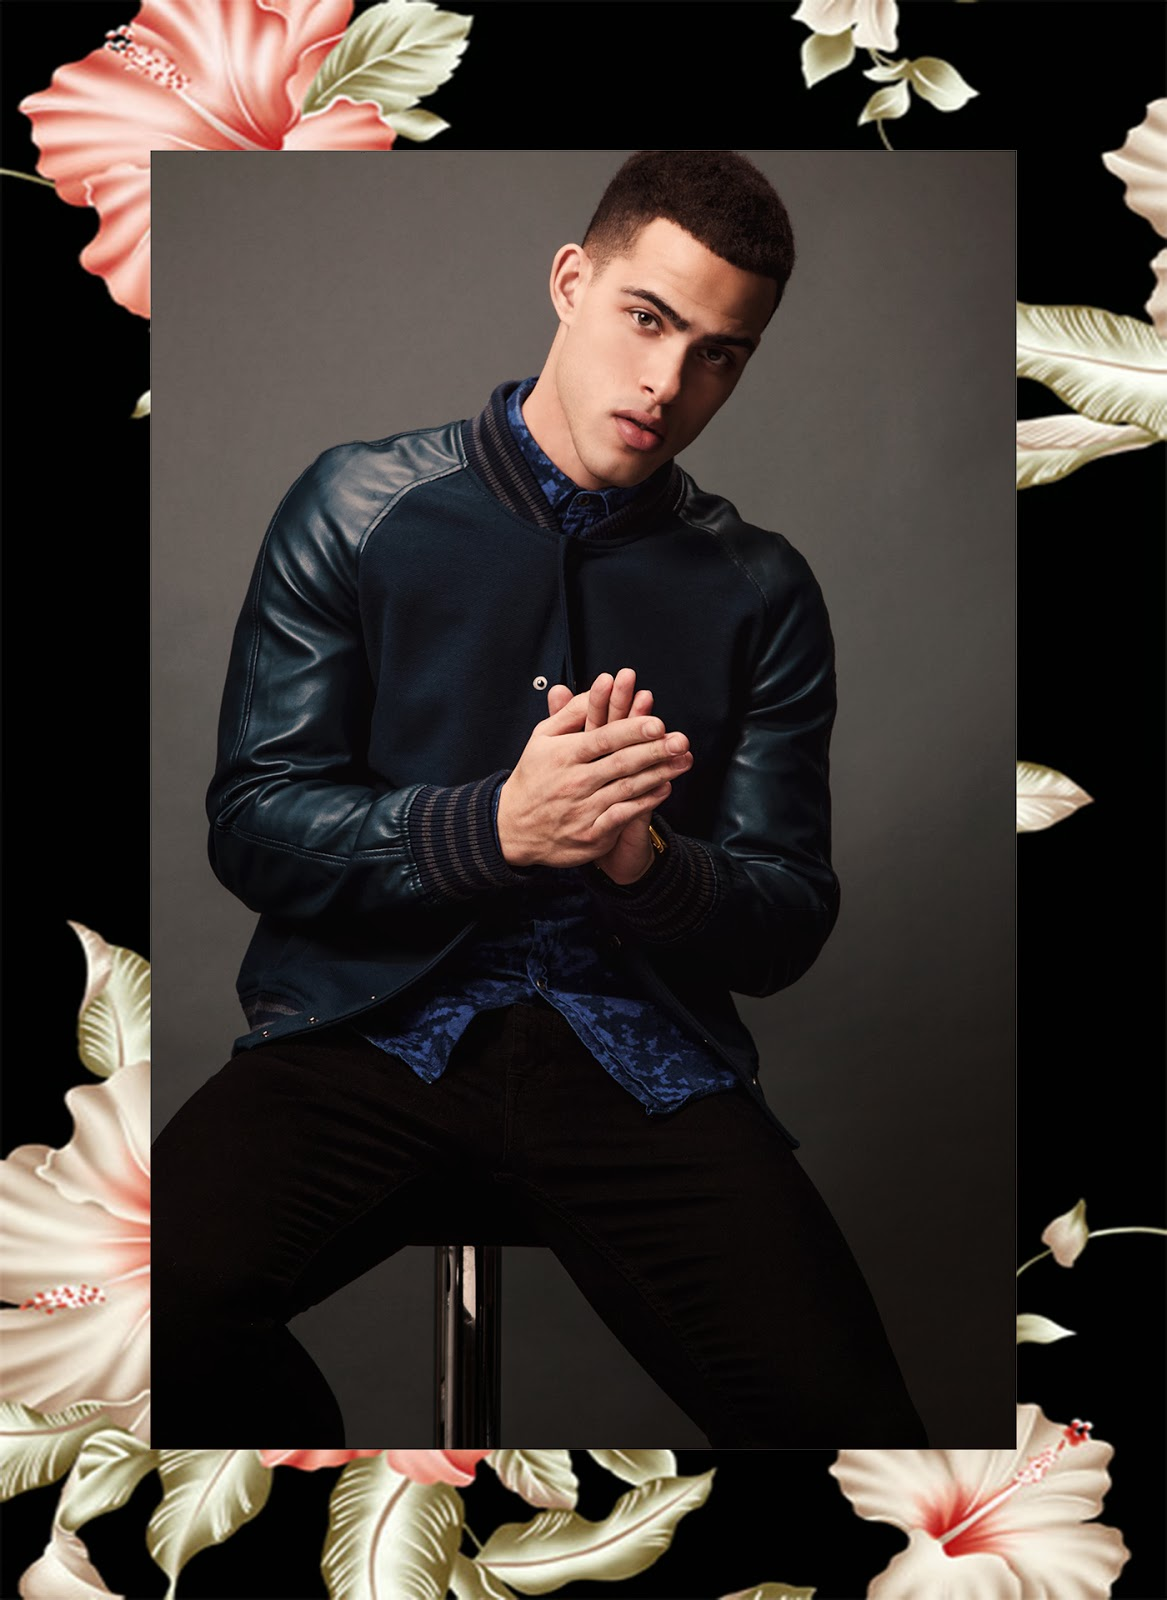 ZACH P. (MAJOR MODEL) POR EVAN TAYLOR GUNVILLE 1 ZACH P. (MAJOR MODEL) POR EVAN TAYLOR GUNVILLE